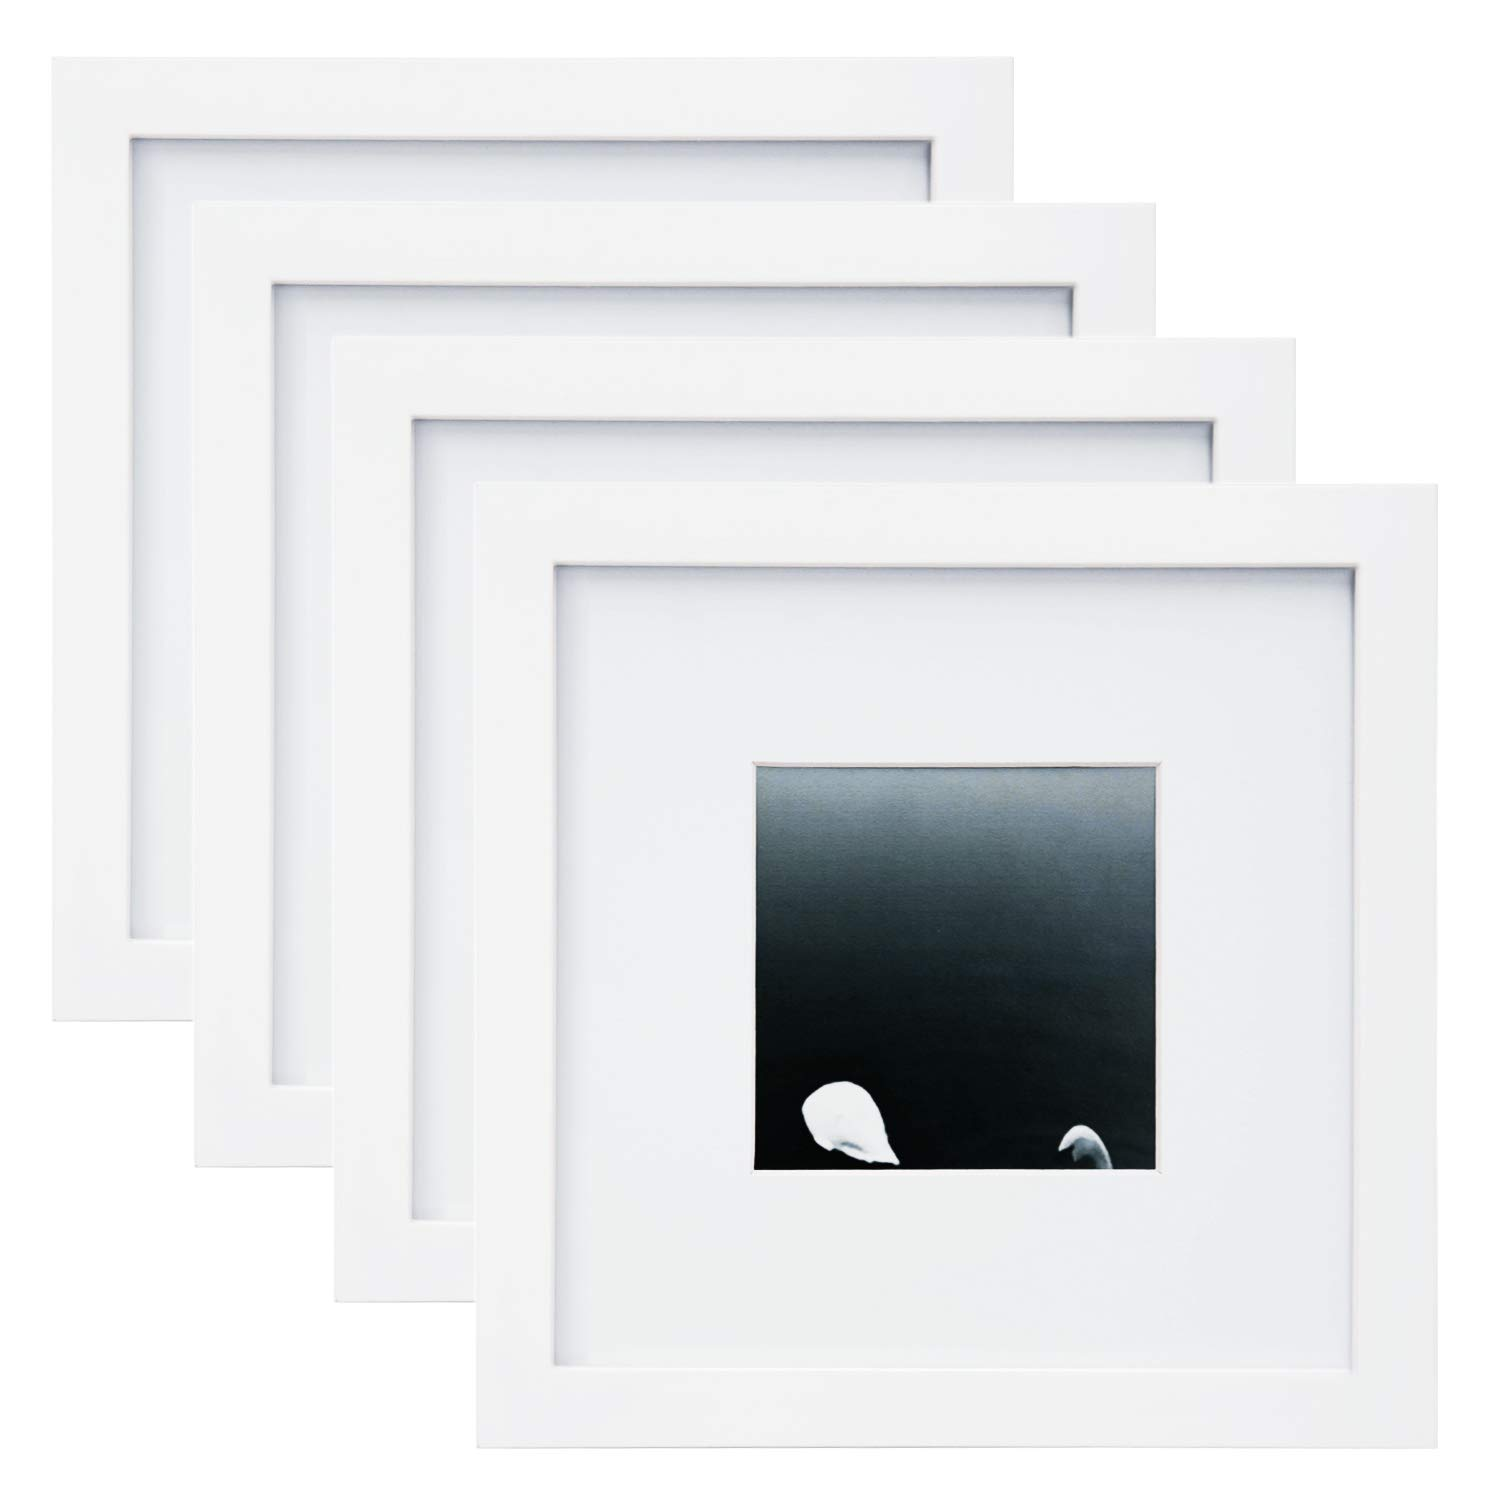 Egofine 8x8 Picture Frames 4 PCS for Pictures 4x4 with Mat Made of Solid Wood for Table Top Display and Wall Mounting Photo Frame White by Egofine